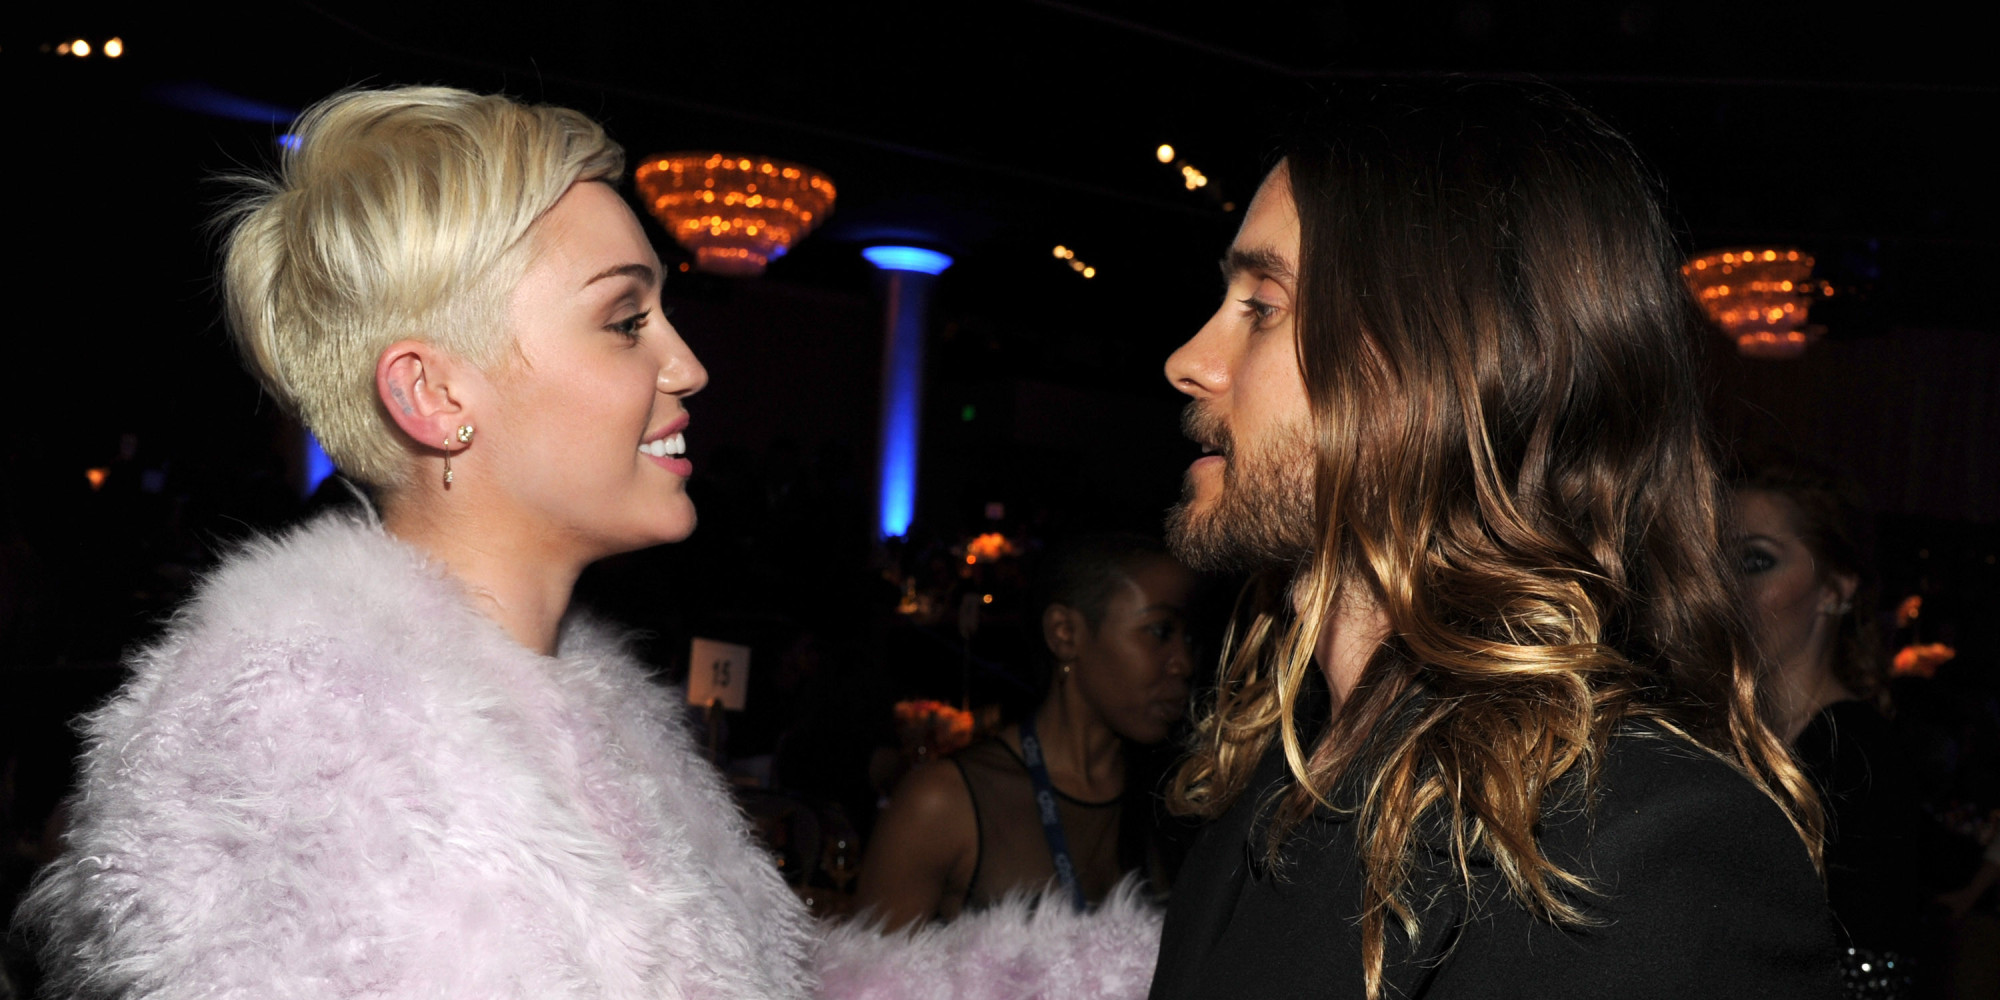 jared leto miley cyrus hooking